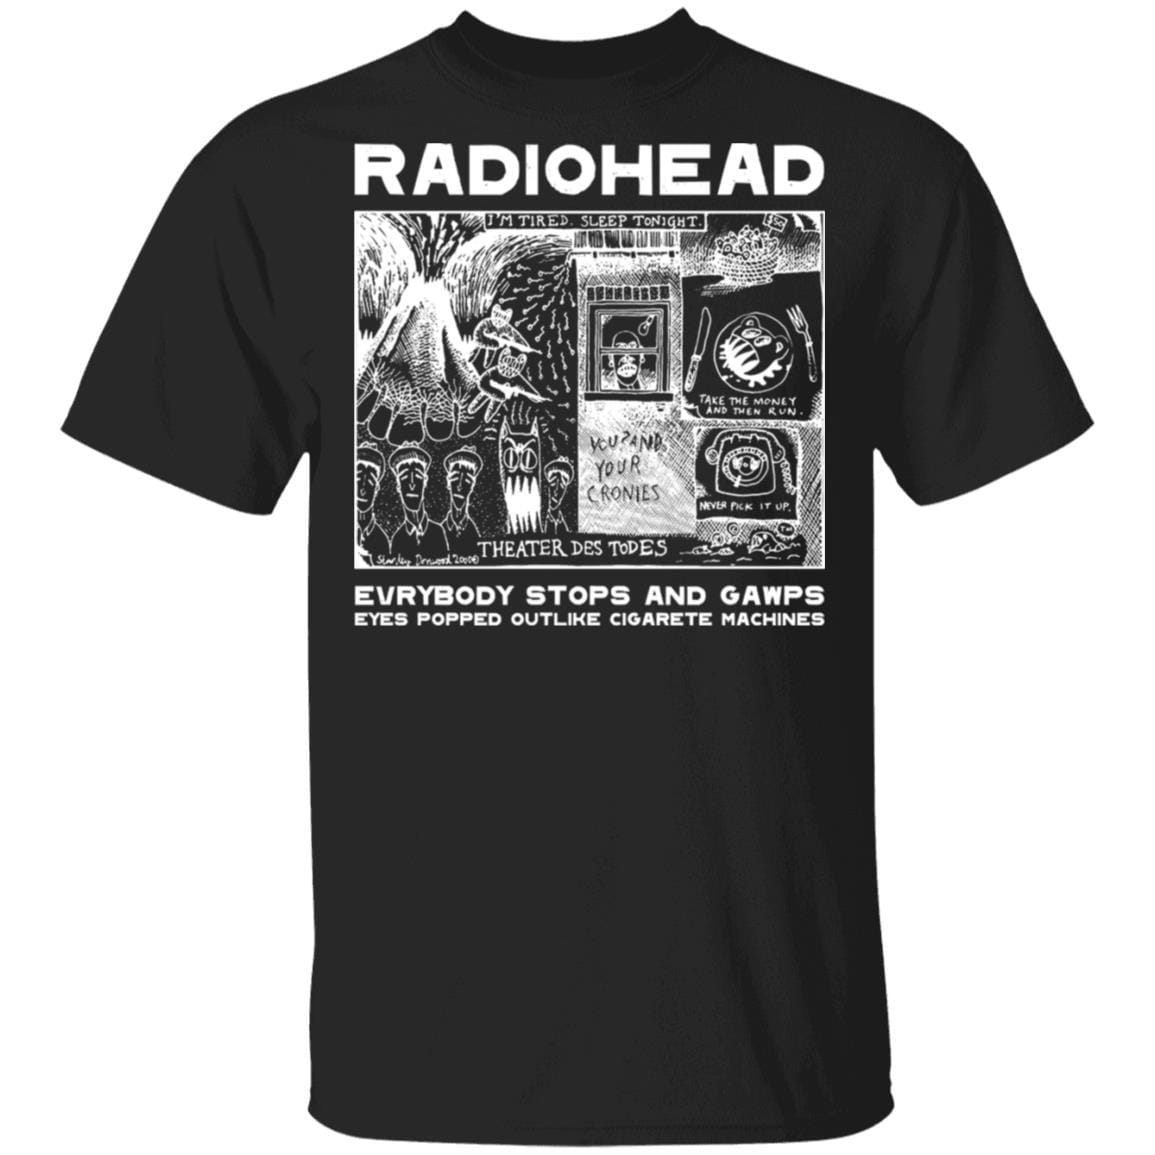 Radiohead Evrybody Stops And Gawps Eyes Popped Outlike Cigarete Machines T-Shirts, Hoodies 1049-9953-87589175-48144 - Tee Ript